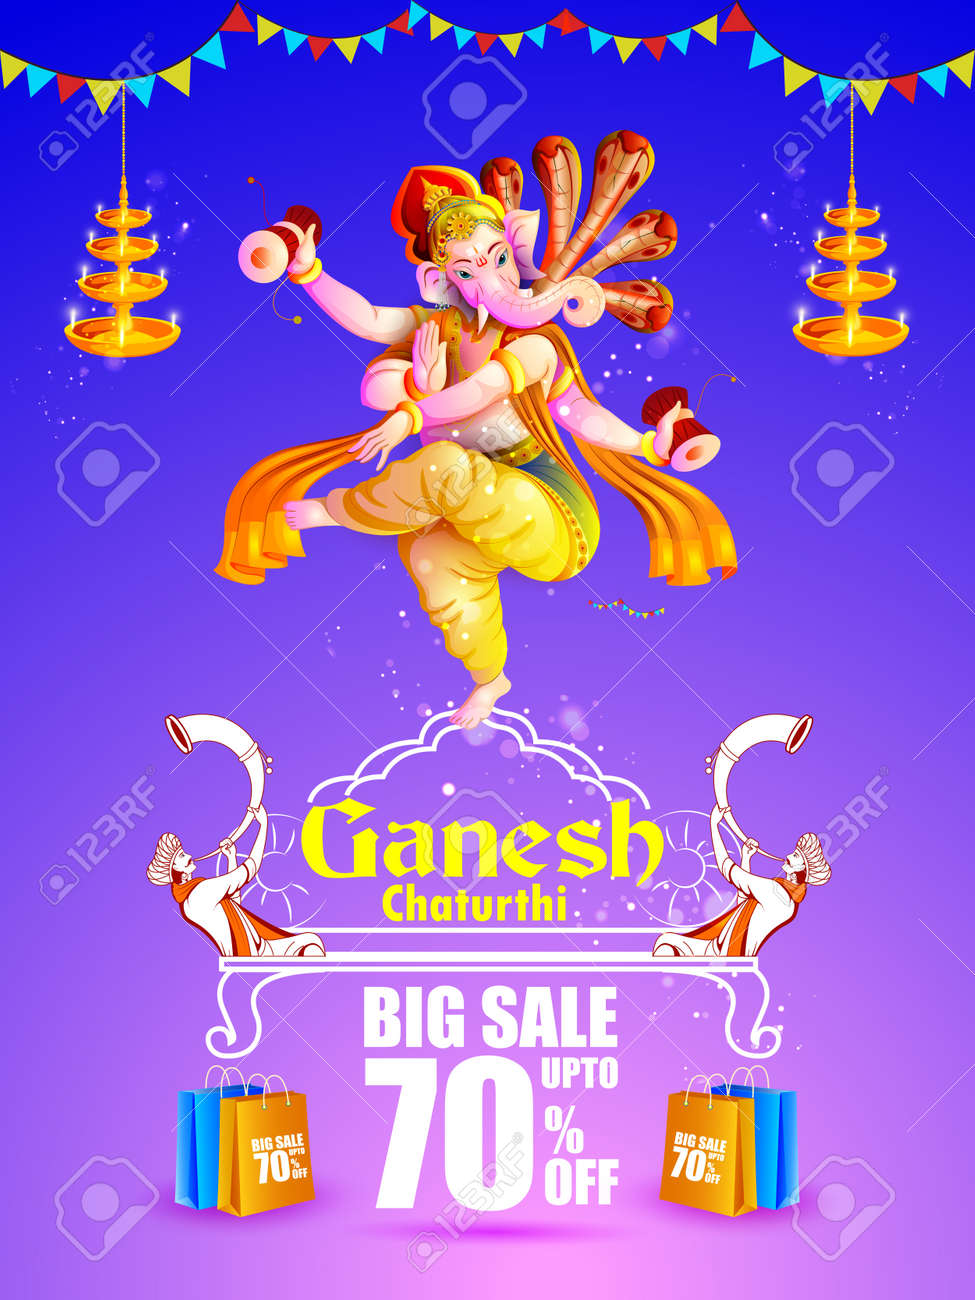 Lord Ganpati On Ganesh Chaturthi Sale Promotion Advertisement Background Stock Vector